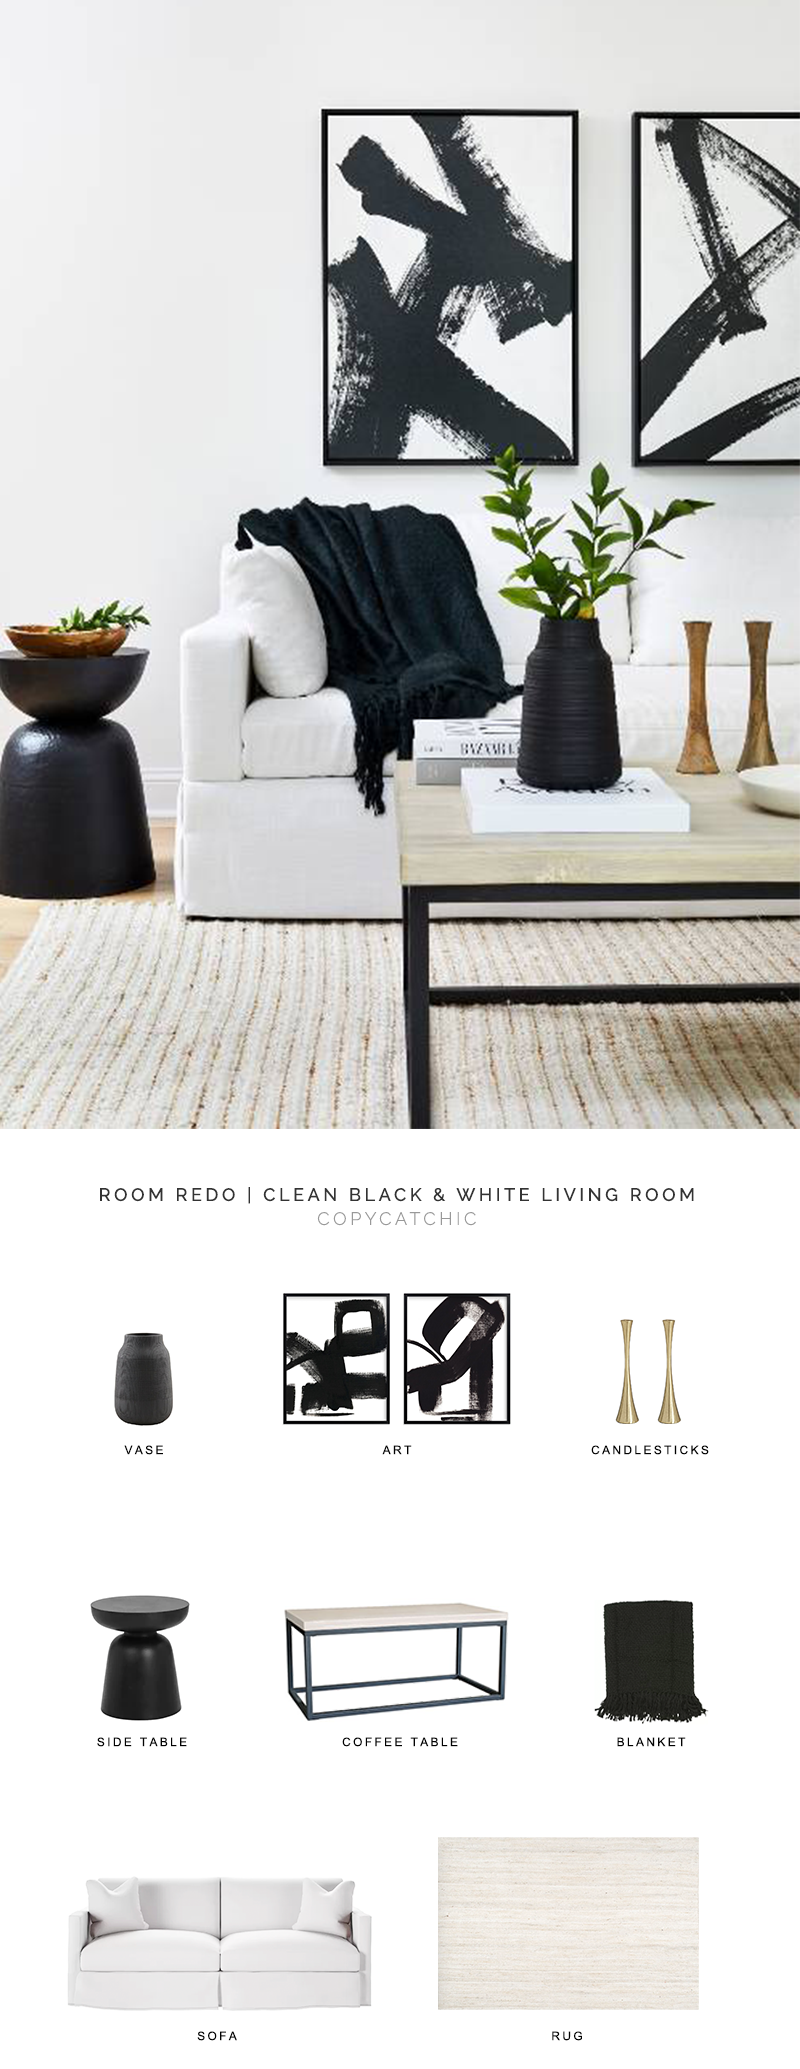 black and white living room look for less, copycatchic luxe living for less, budget home decor and design, daily finds, home trends, sales, budget travel and room redos